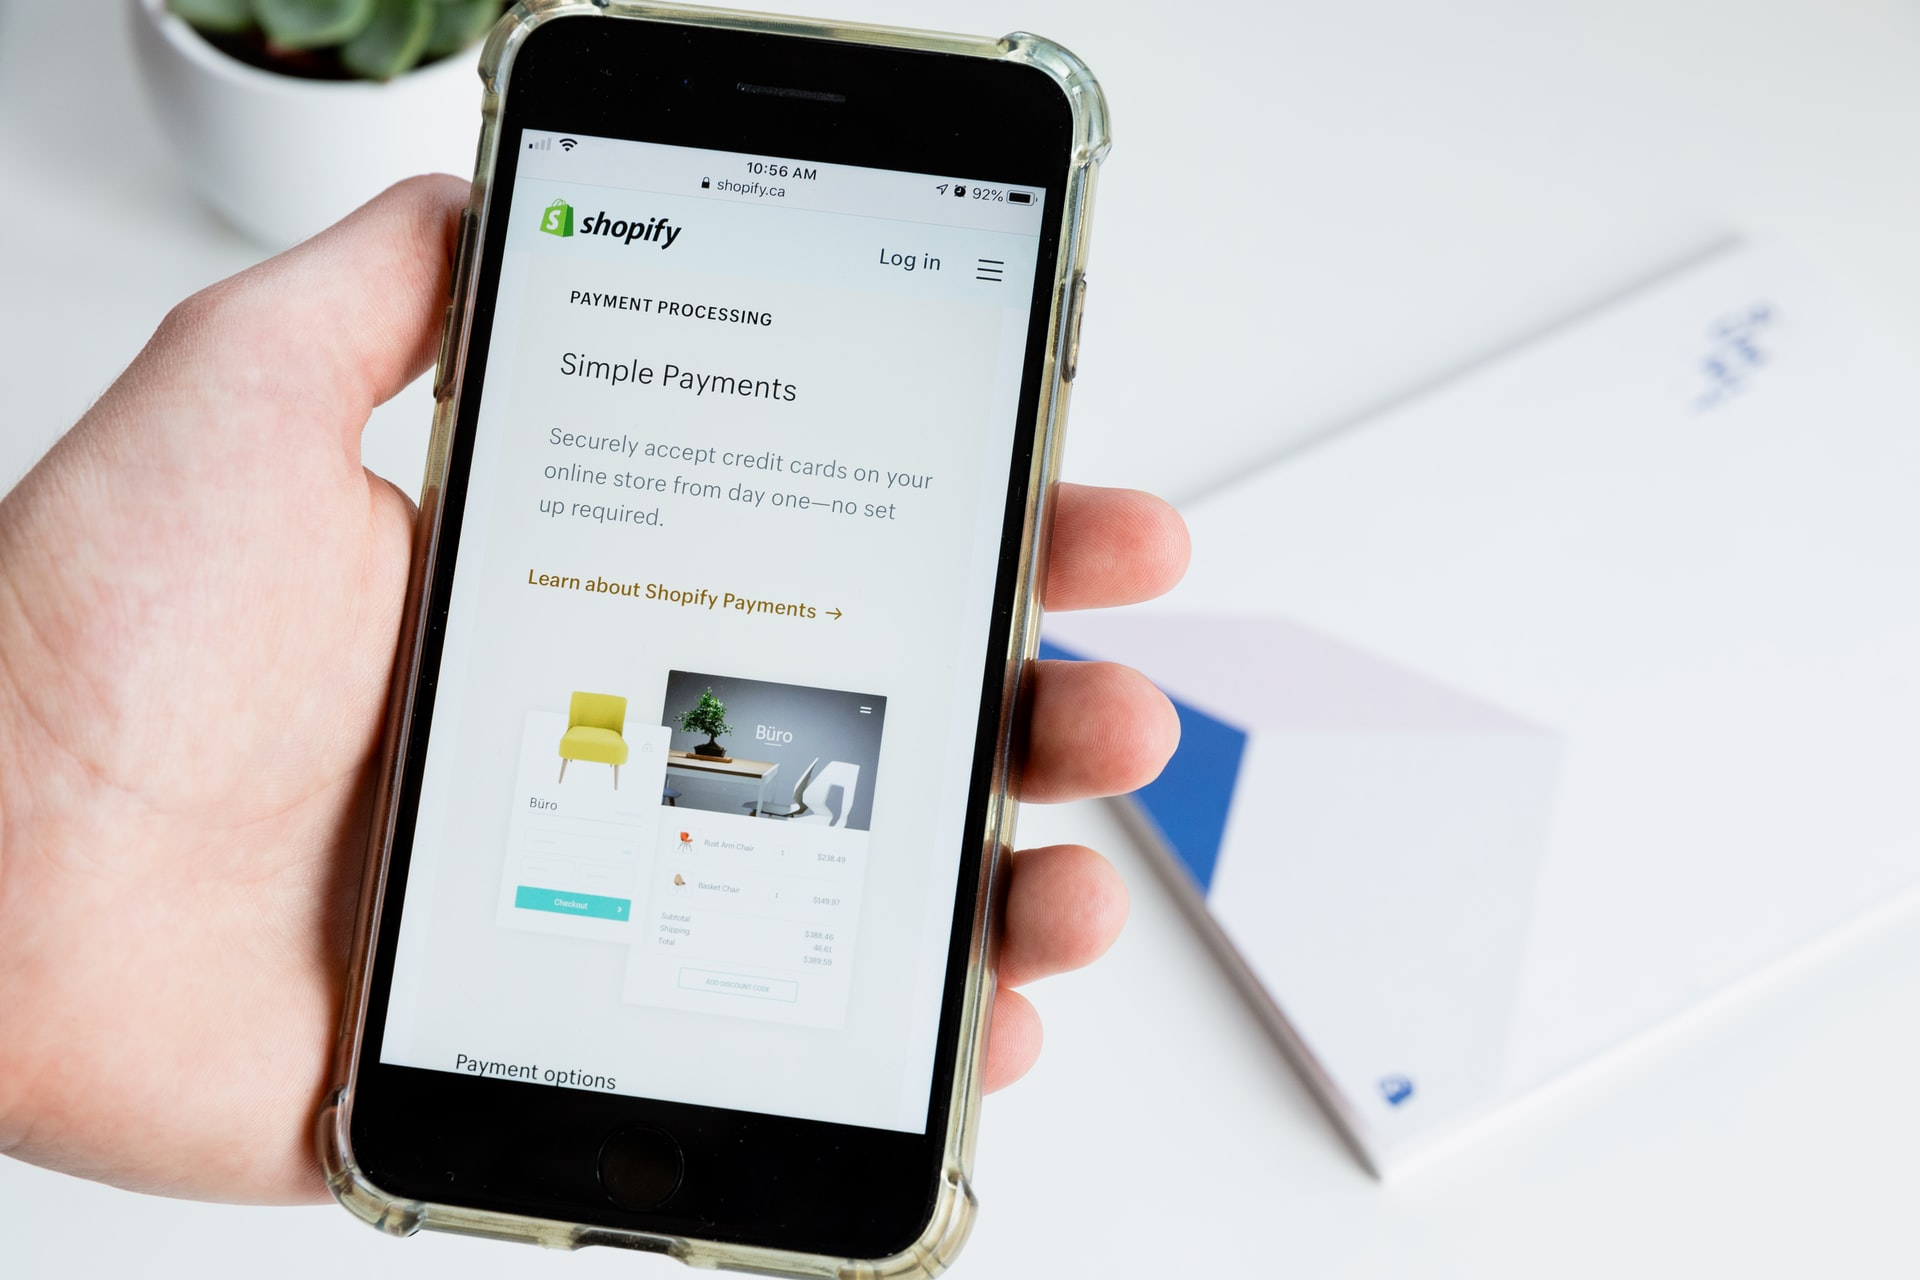 Shopify payments on phone